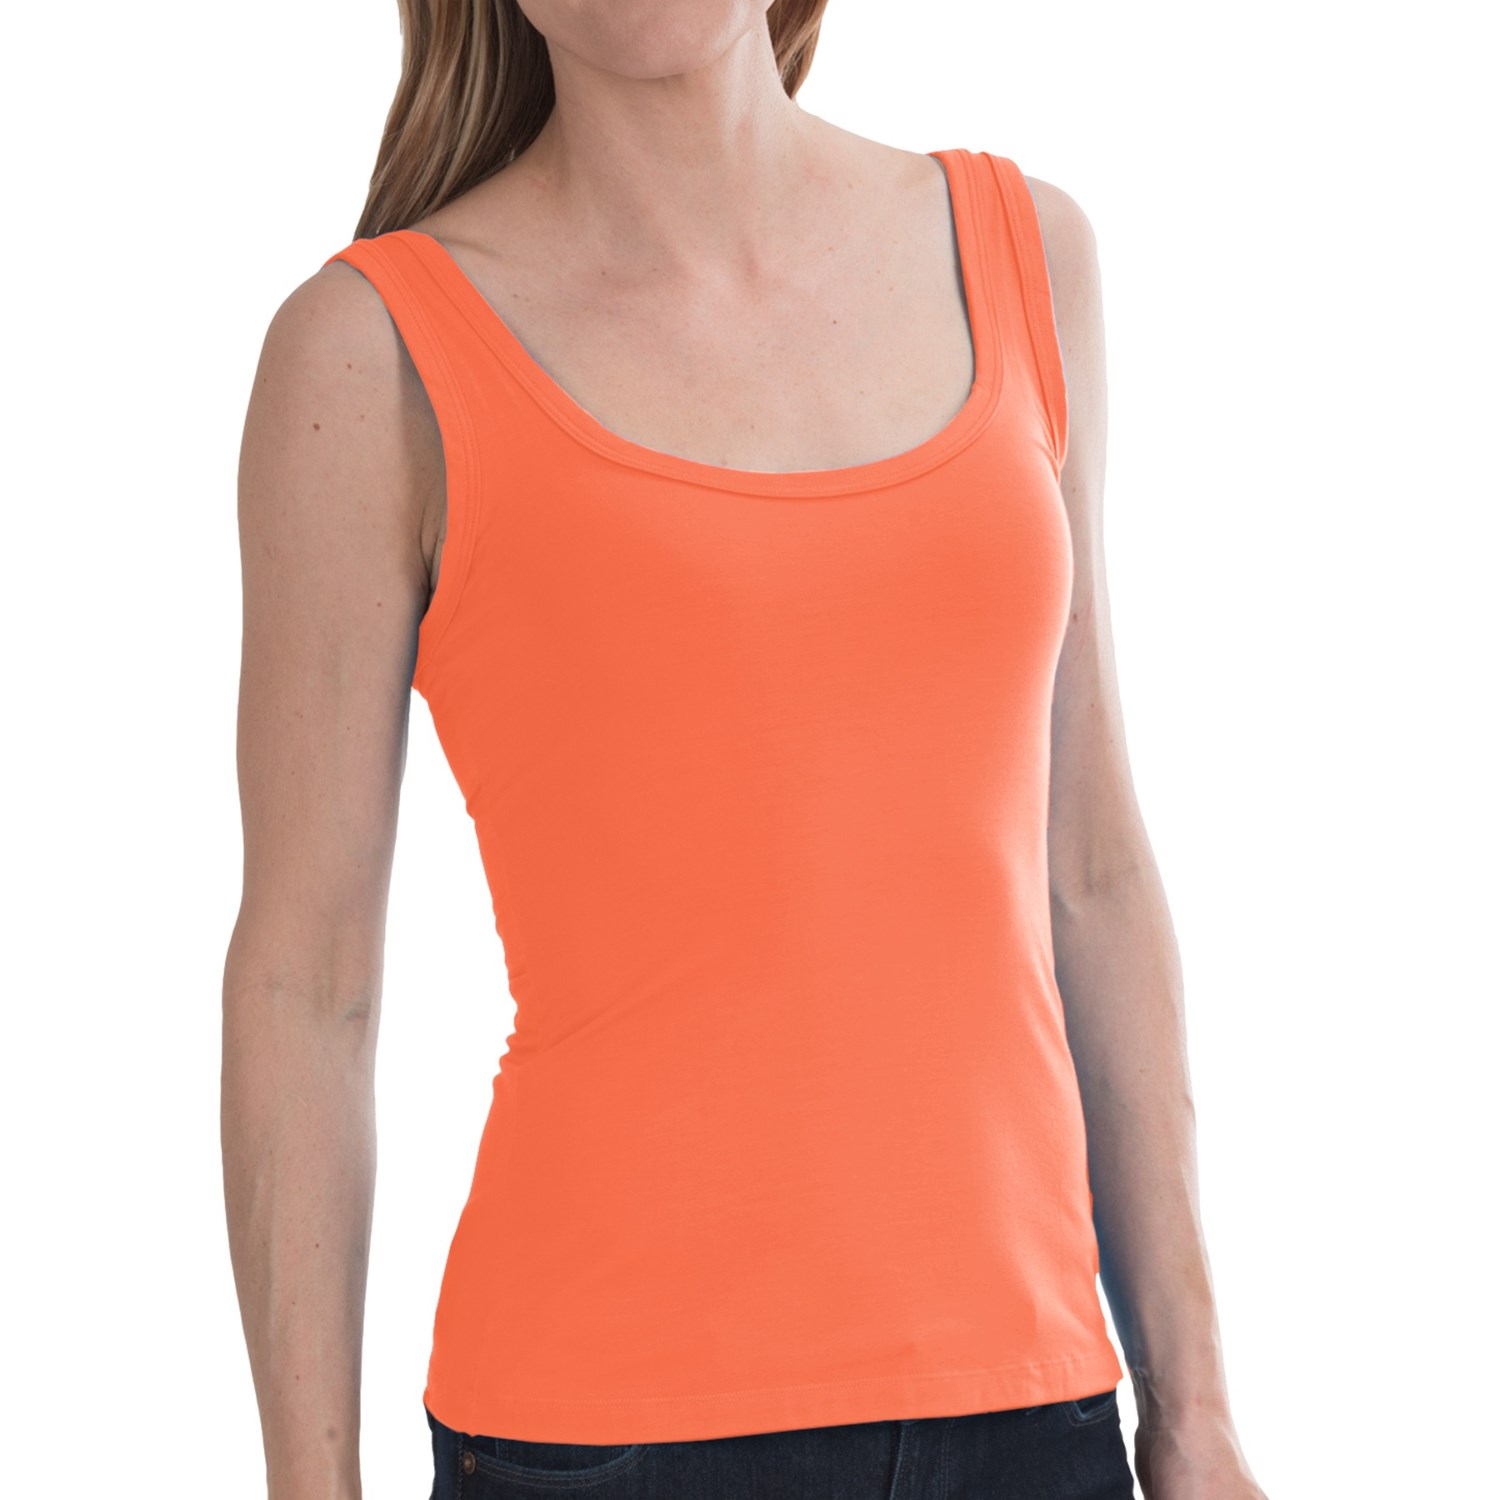 talco women Shop designer items by talco online choose the perfect piece for you: easy, quick returns and secure payment.